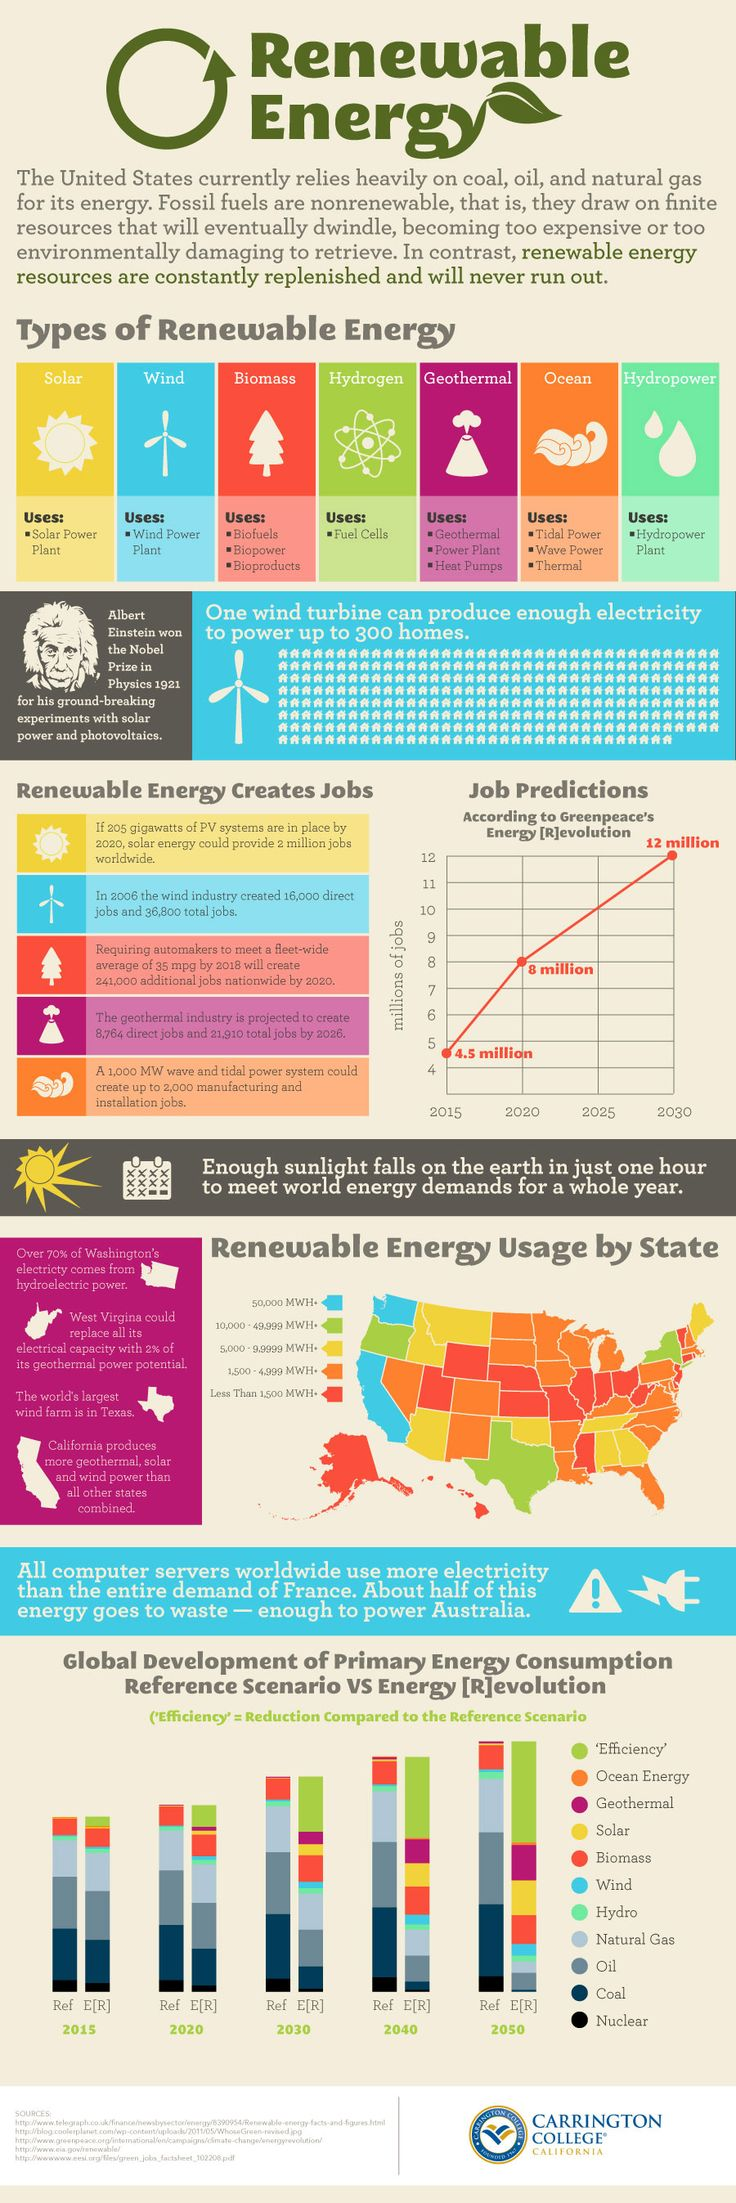 Jobs that will be created by renewables #oceanrenewable  | #infographic repinned by @Piktochart